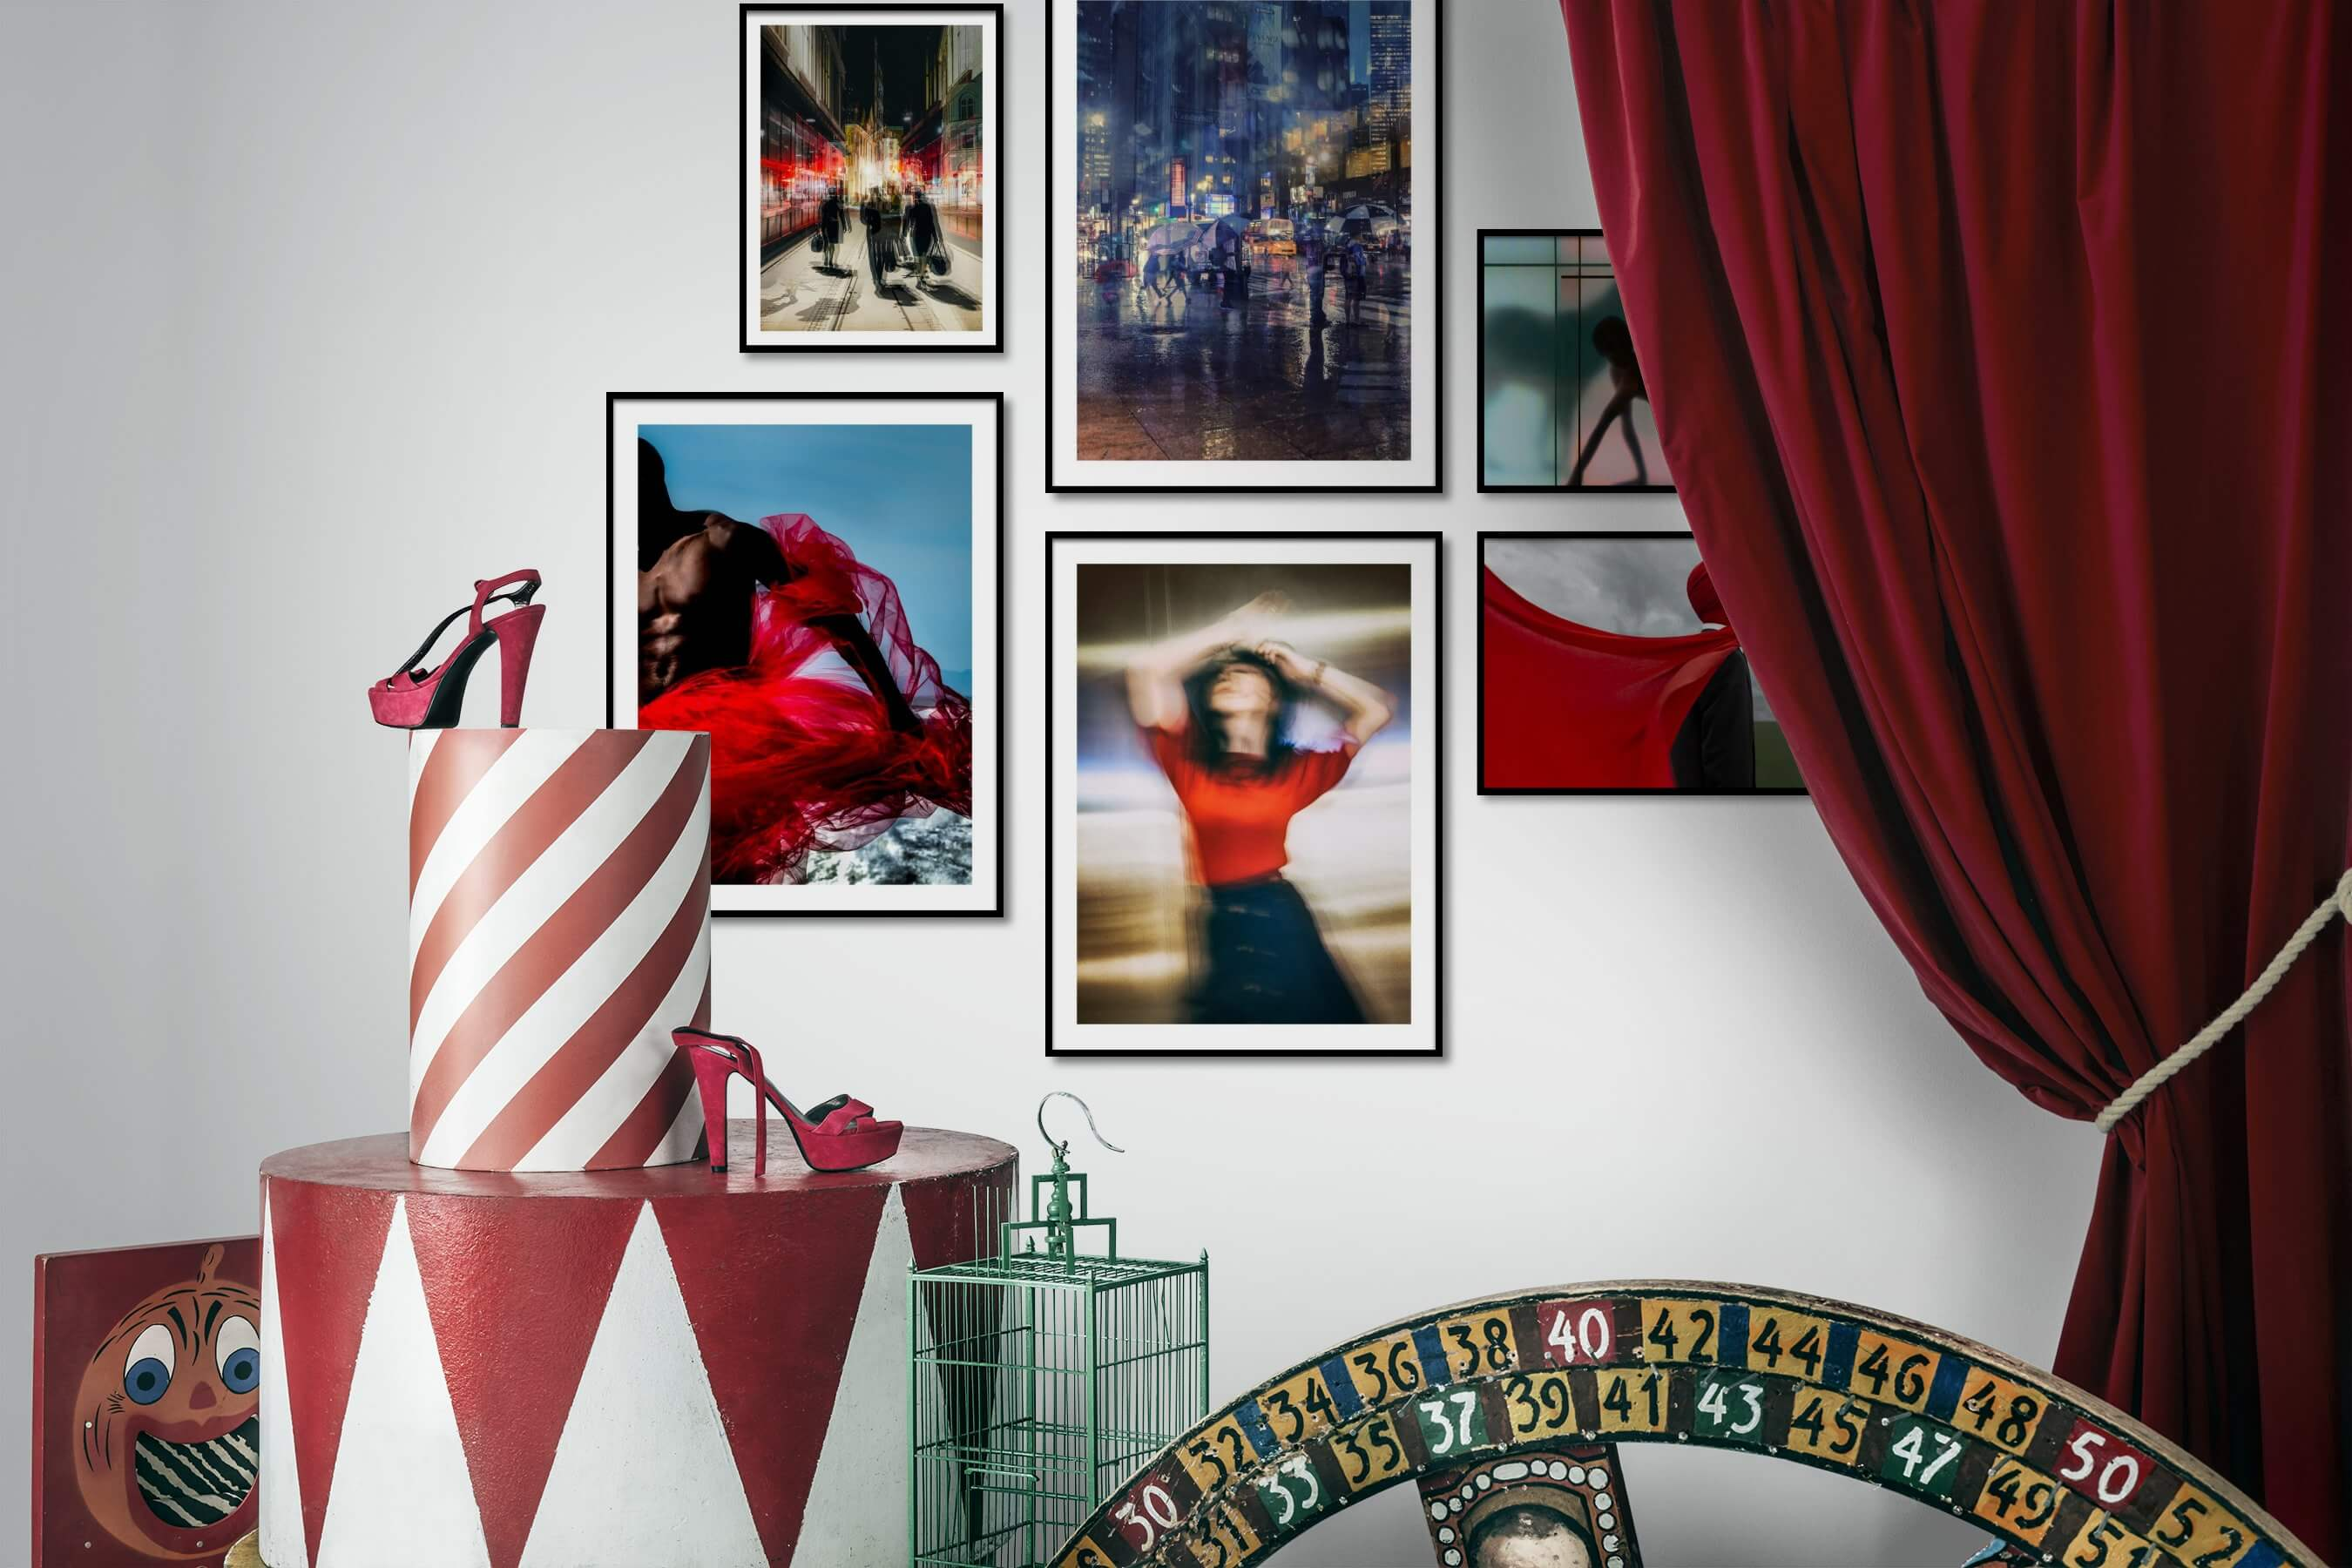 Gallery wall idea with six framed pictures arranged on a wall depicting For the Moderate, City Life, Americana, Fashion & Beauty, Artsy, and For the Maximalist